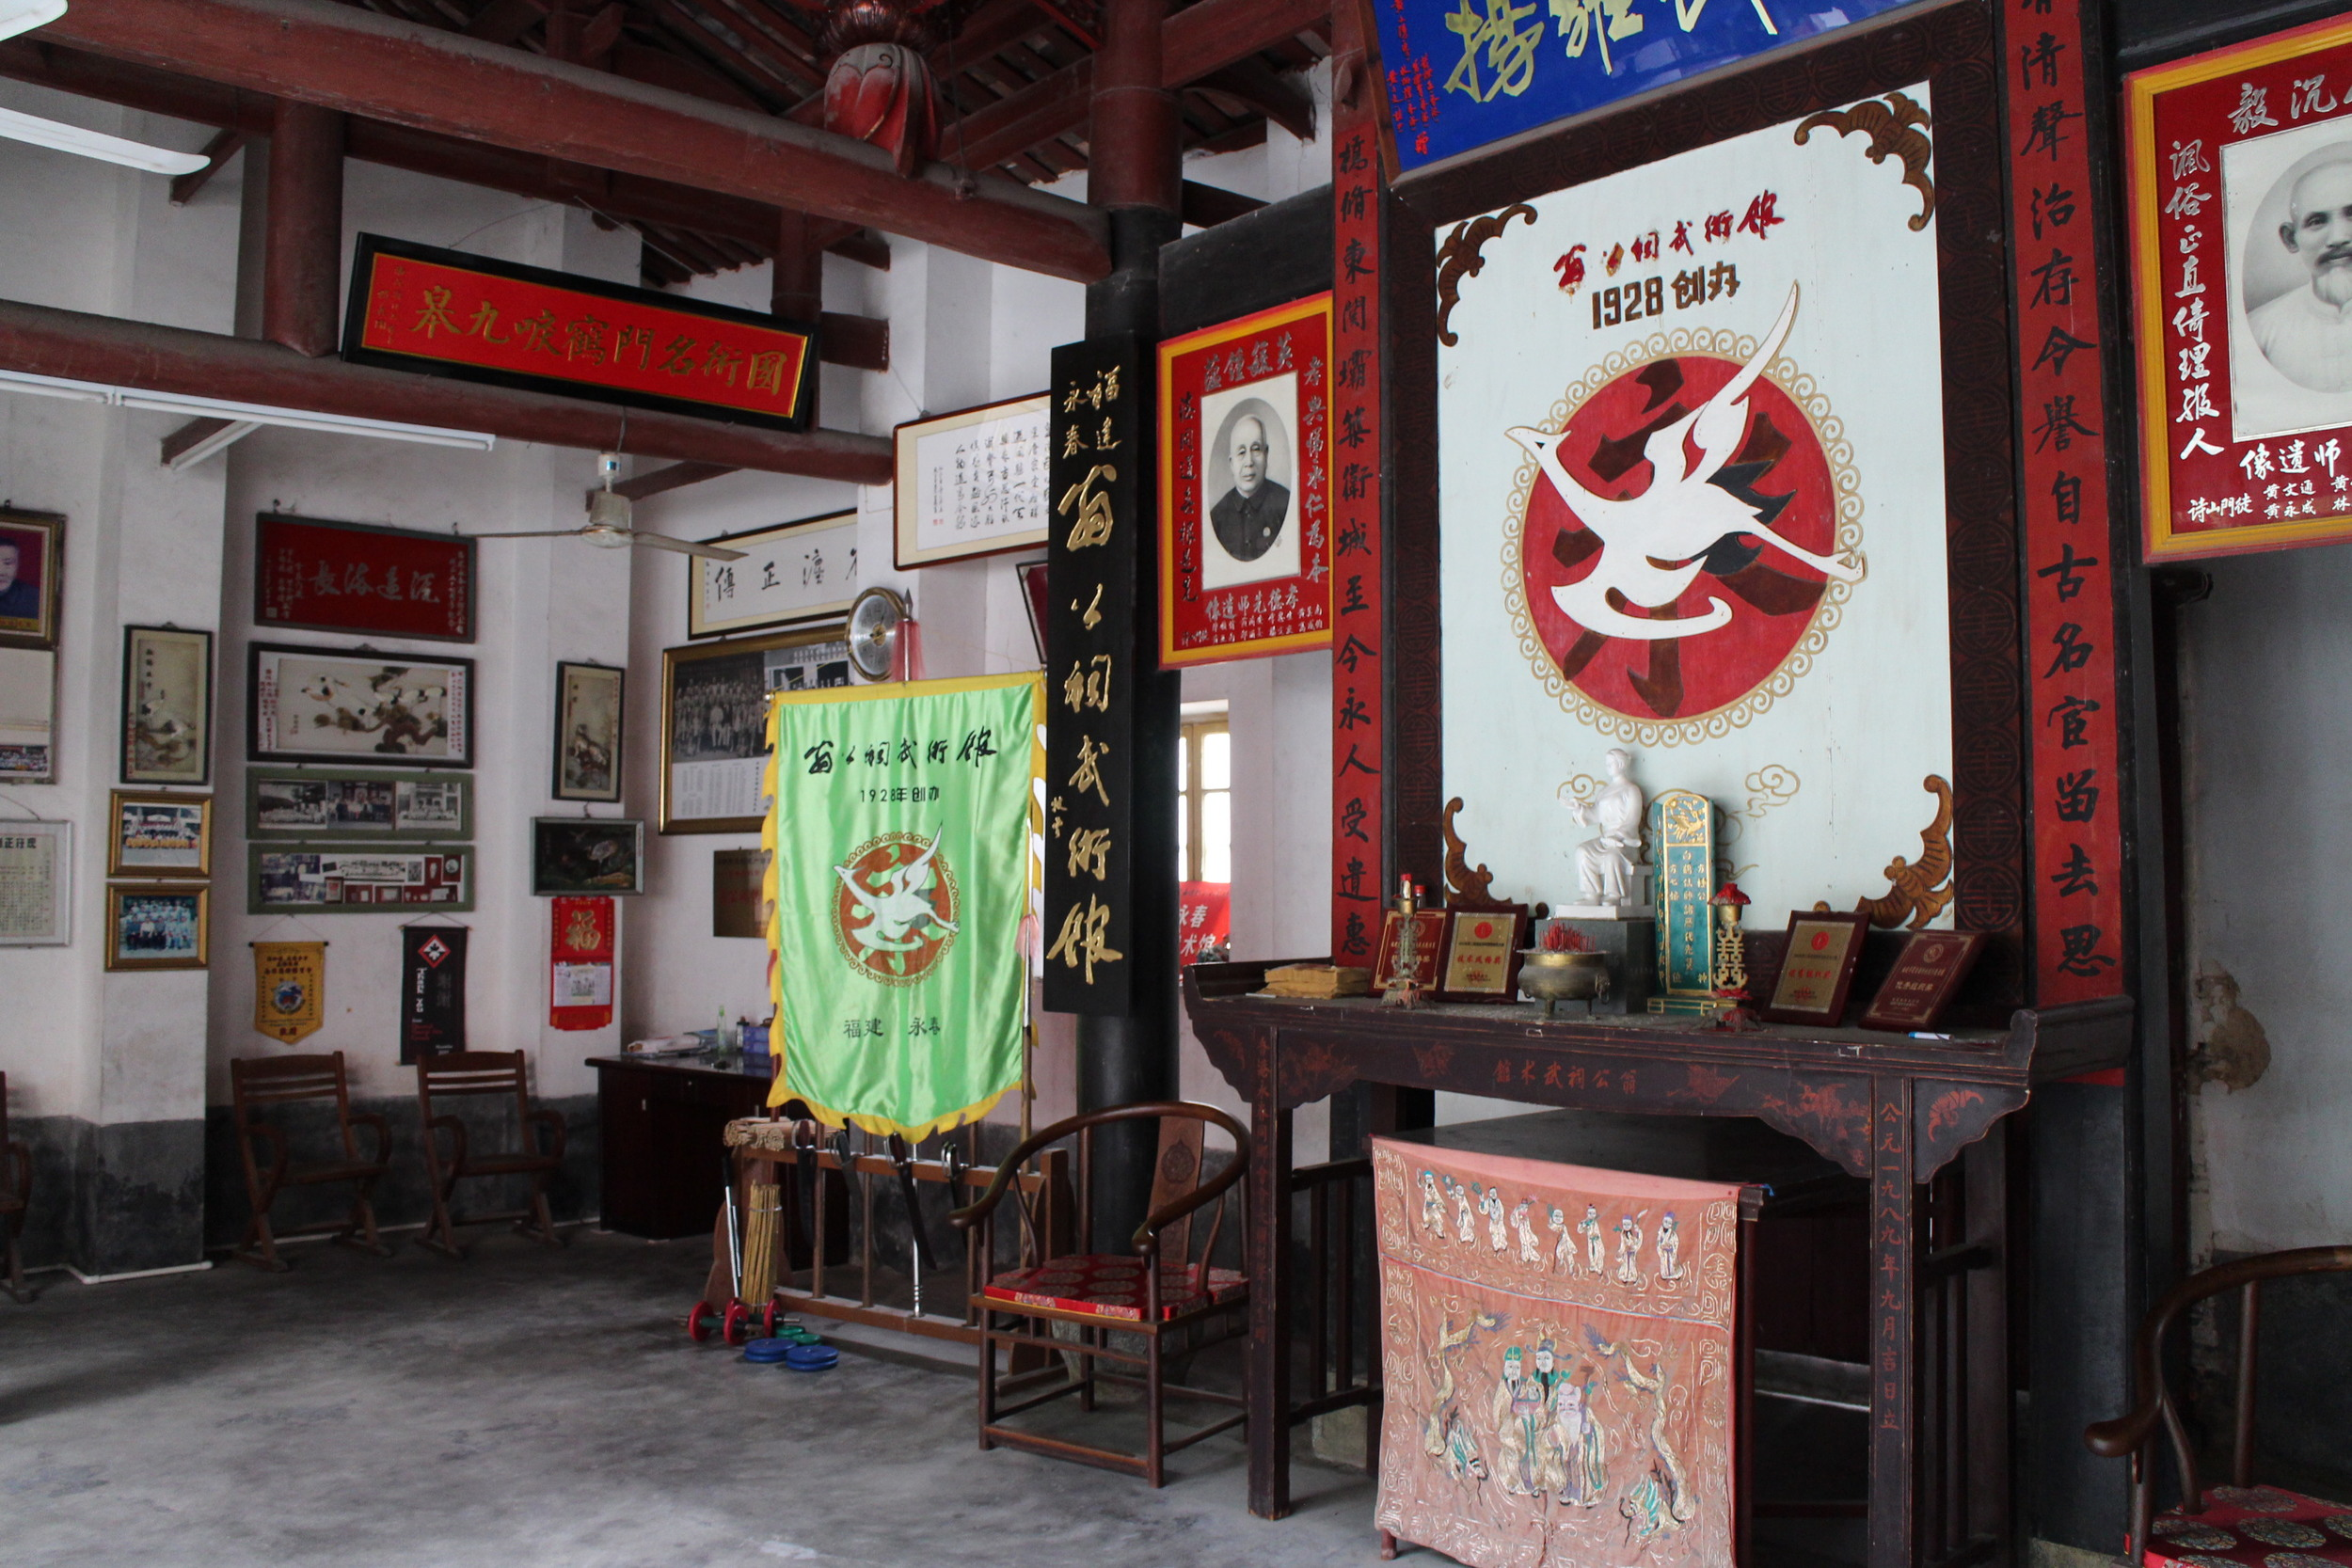 Weng Gong Ci Martial Gym